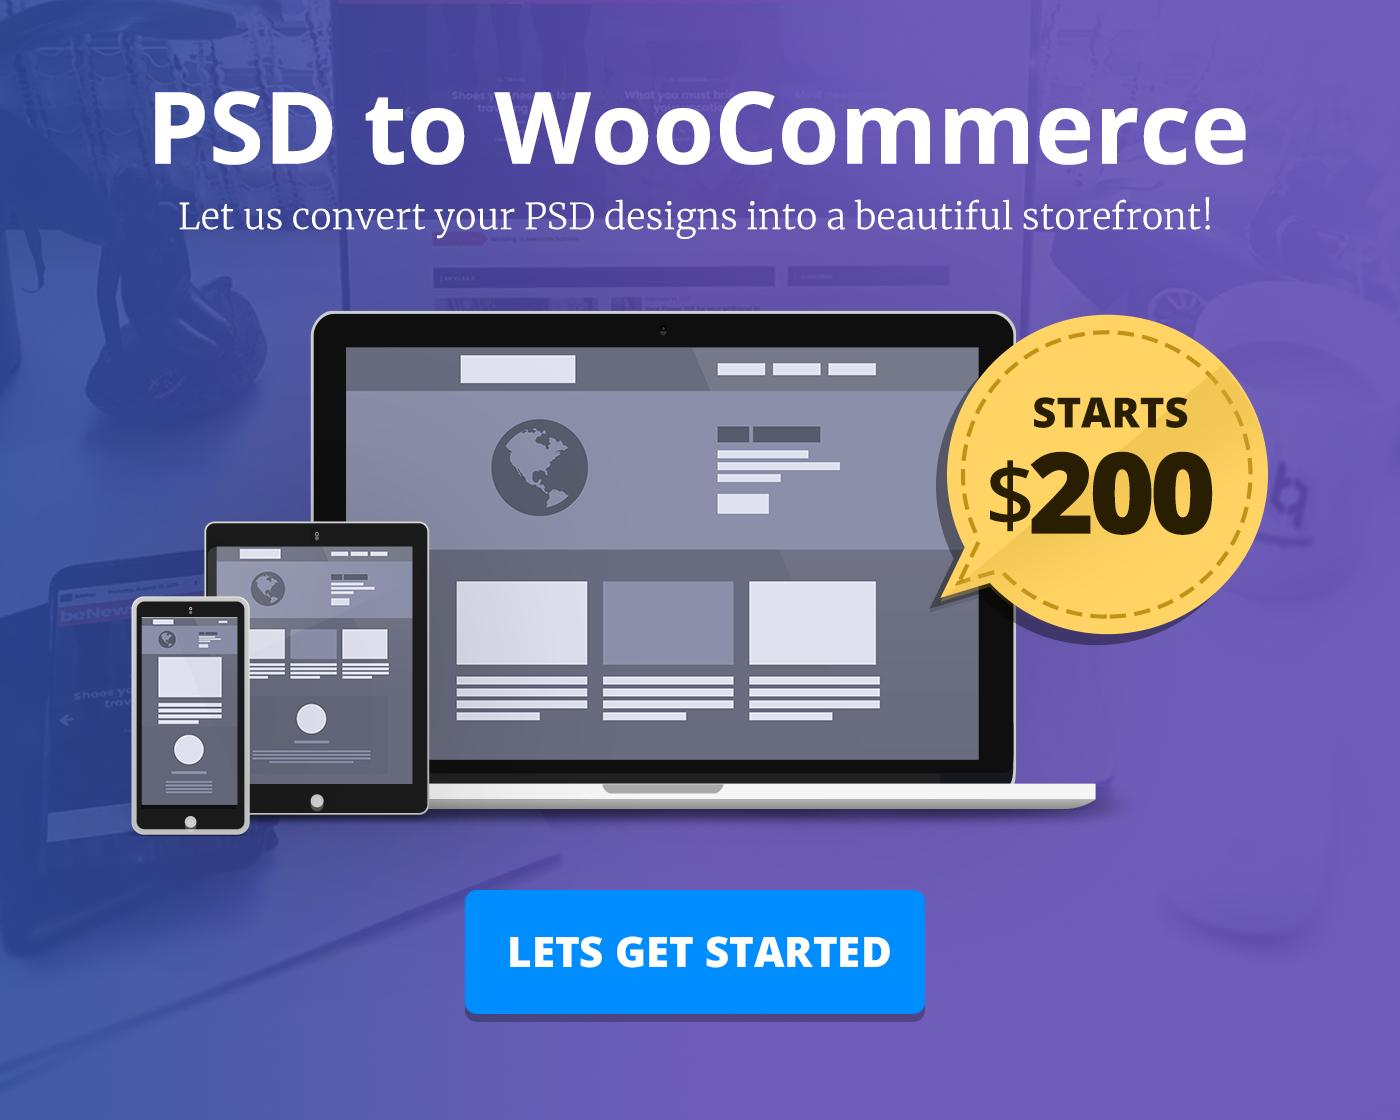 PSD to WooCommerce Store Development by BloomPixel - 110296